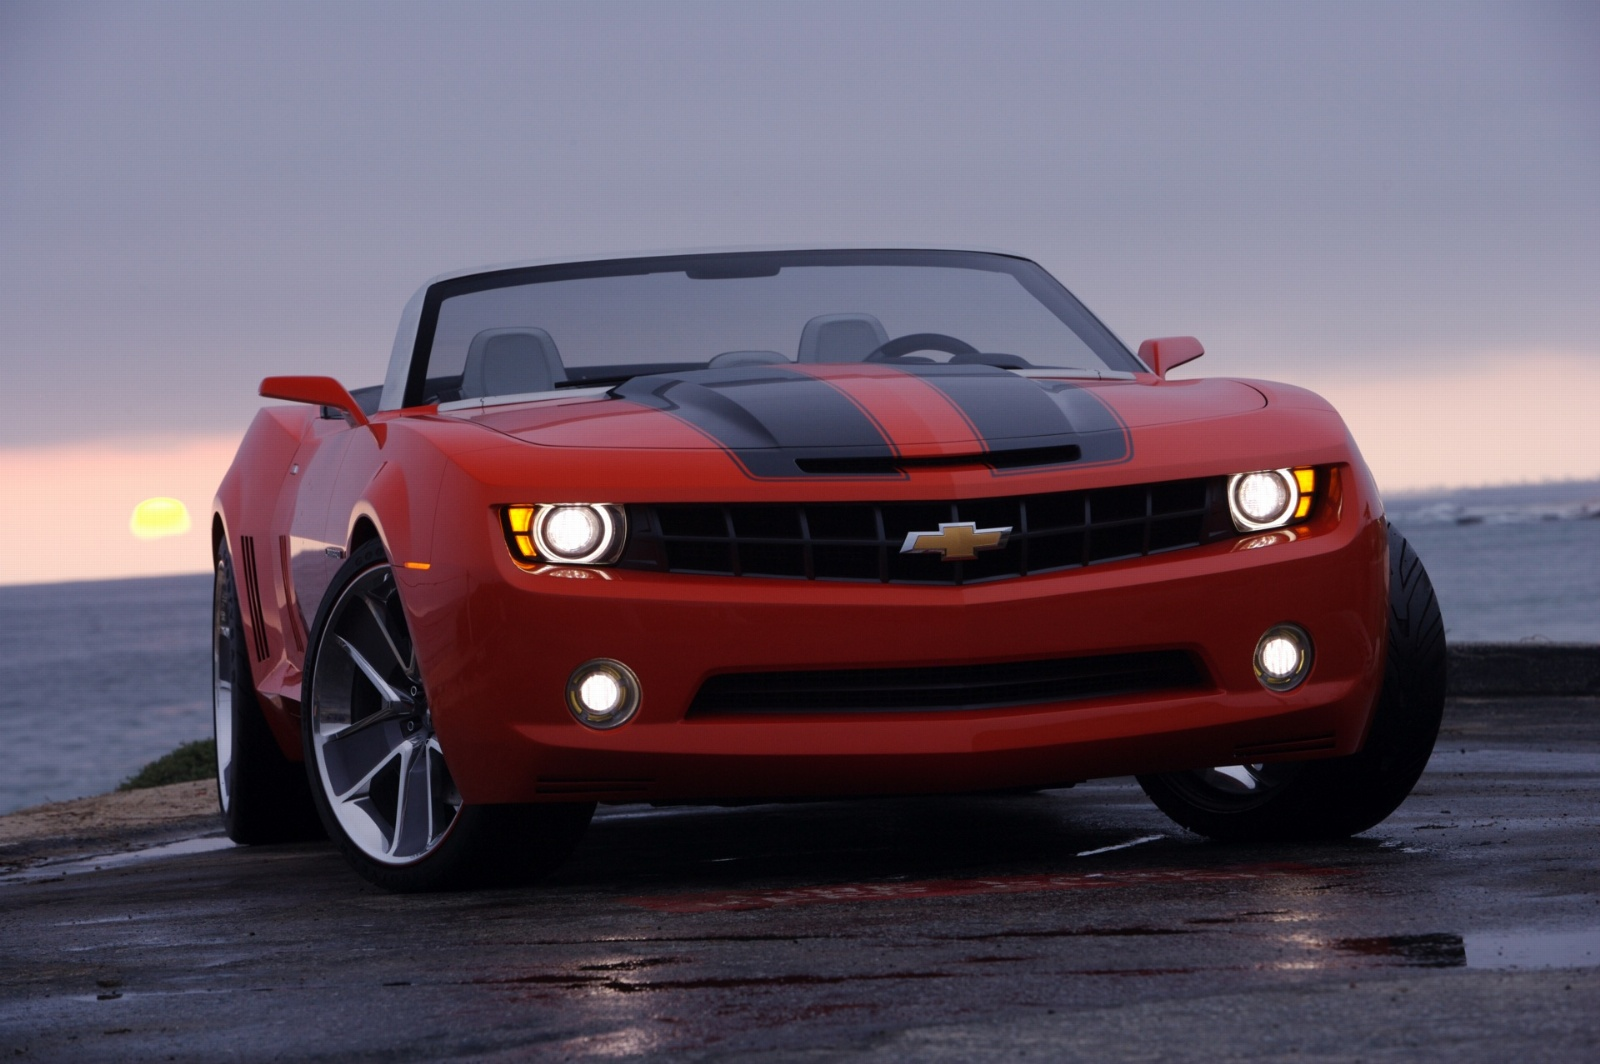 2008 Chevrolet Camaro Convertible Concept Image. Photo 44 of 109